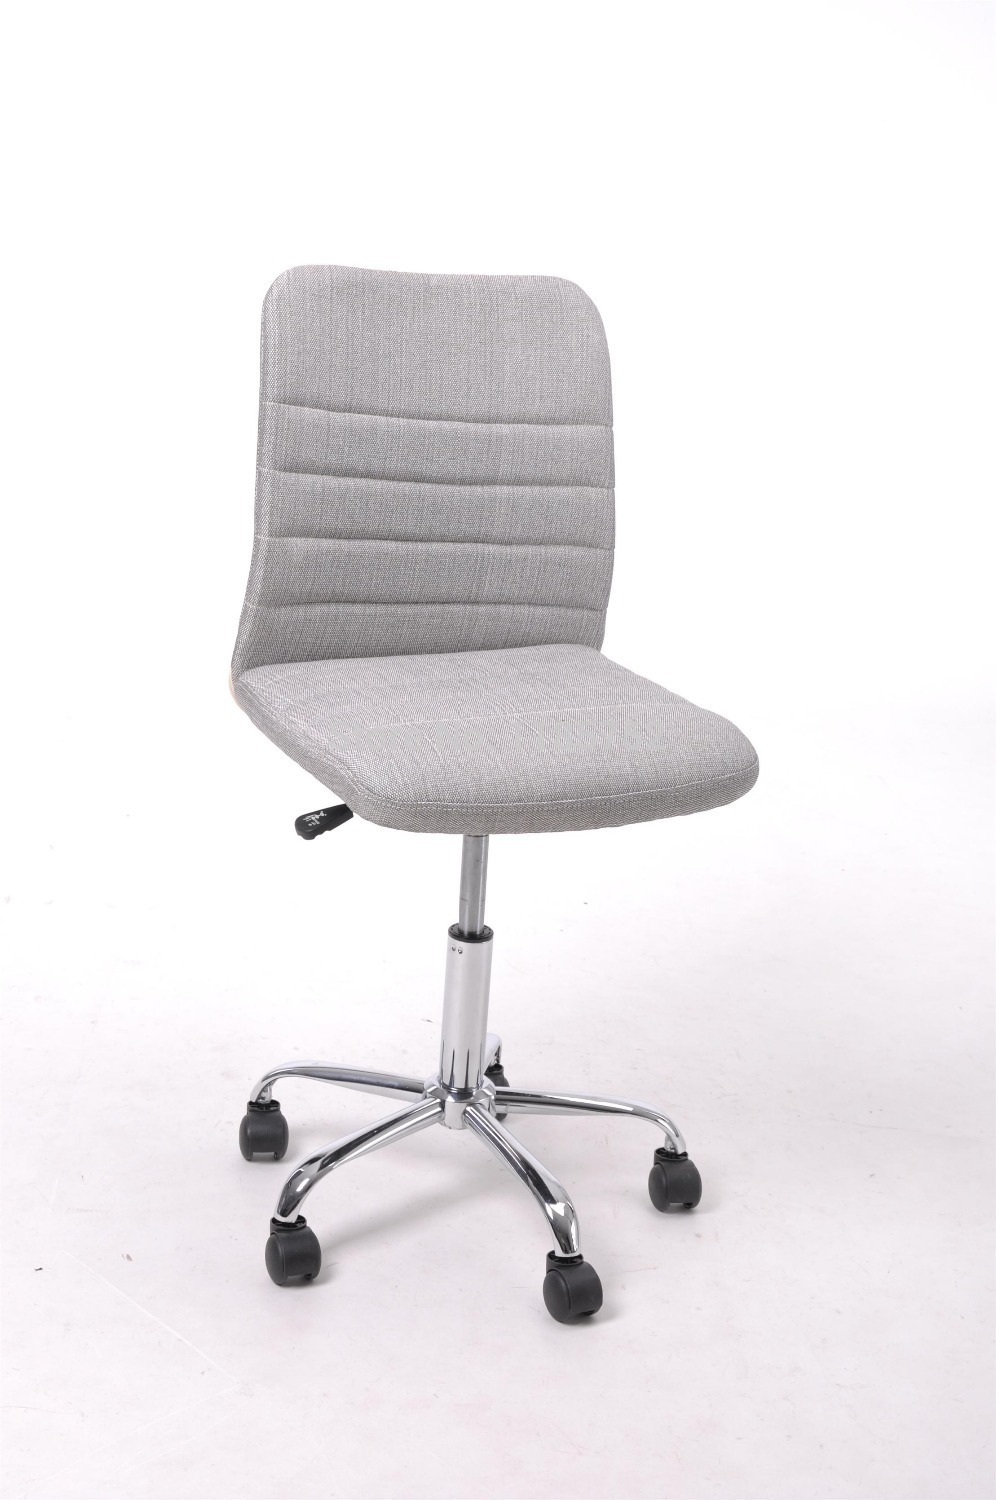 bedroom office chair. Get Quotations · Brand New Grey Lift Chair Office Without Arms Computer For Bedroom Furniture Living T